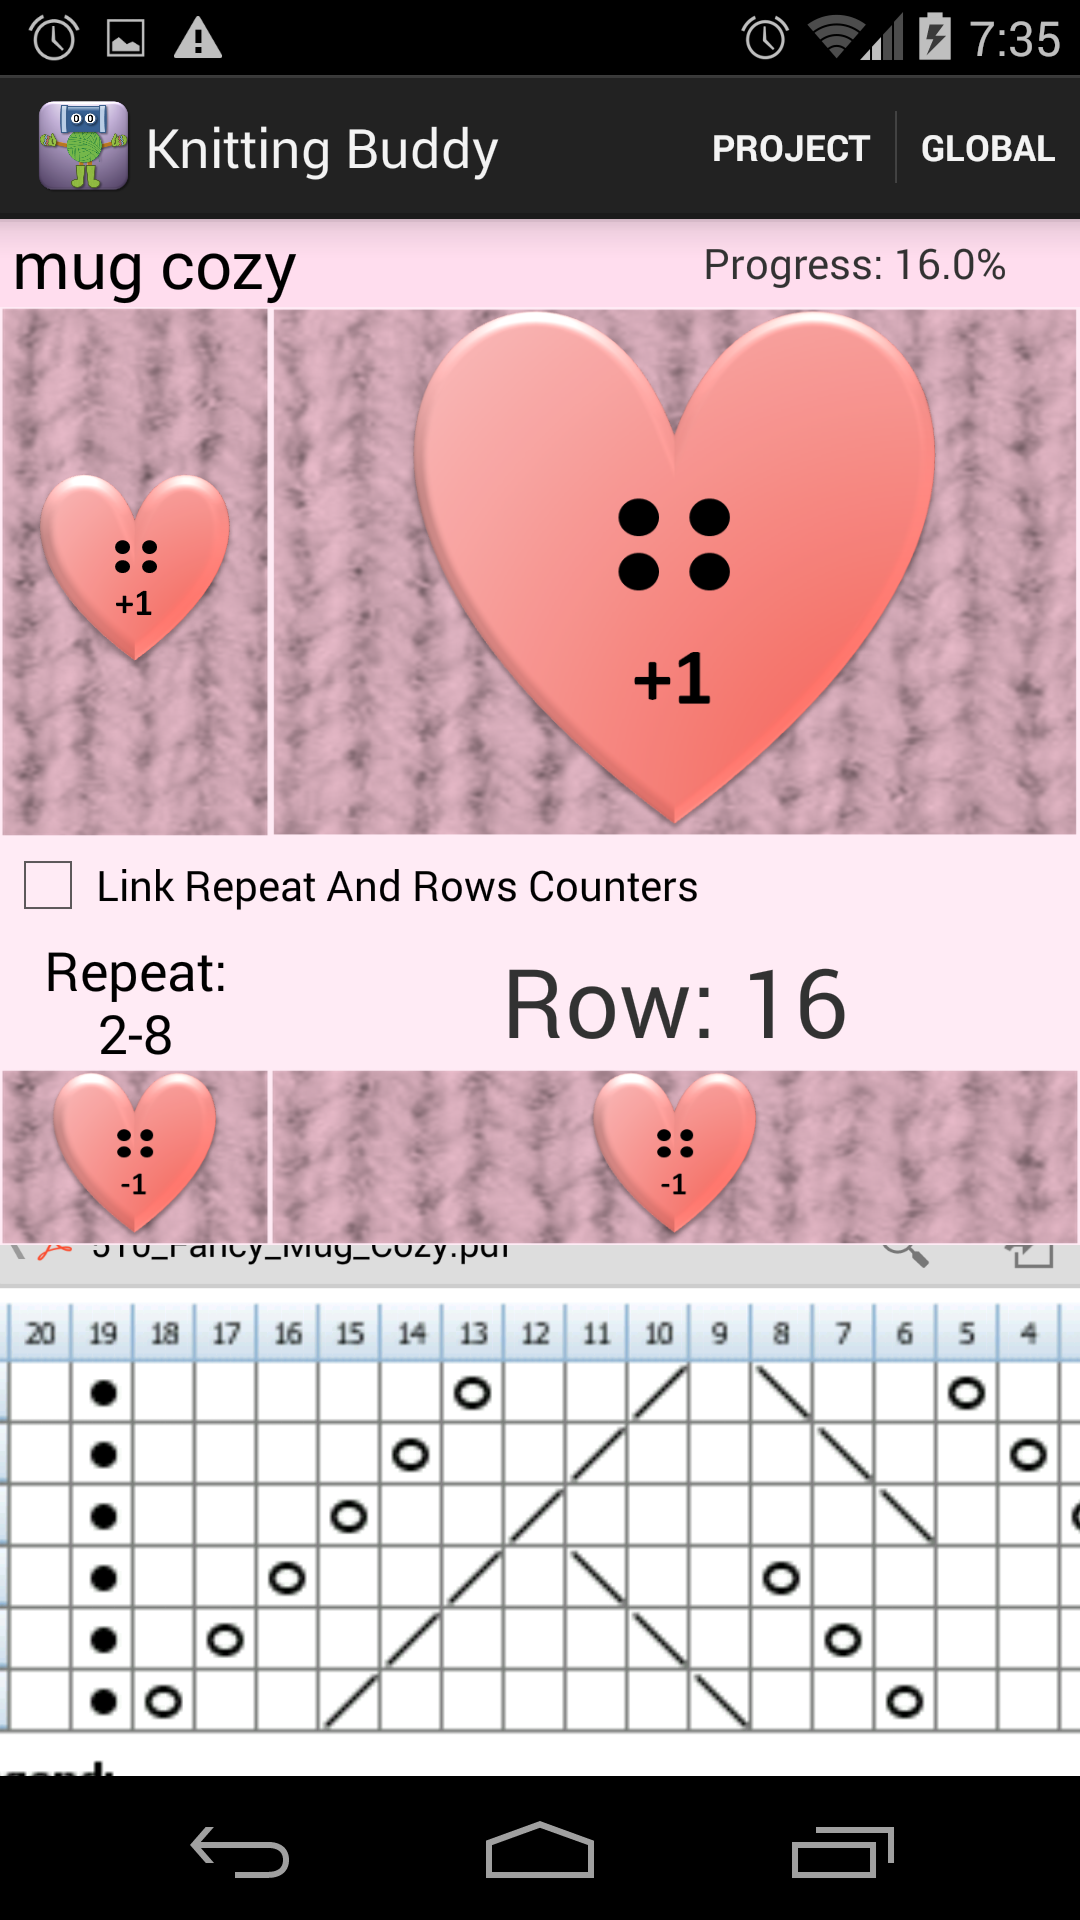 Amazon.com: Knitting and Crochet Buddy: Appstore for Android